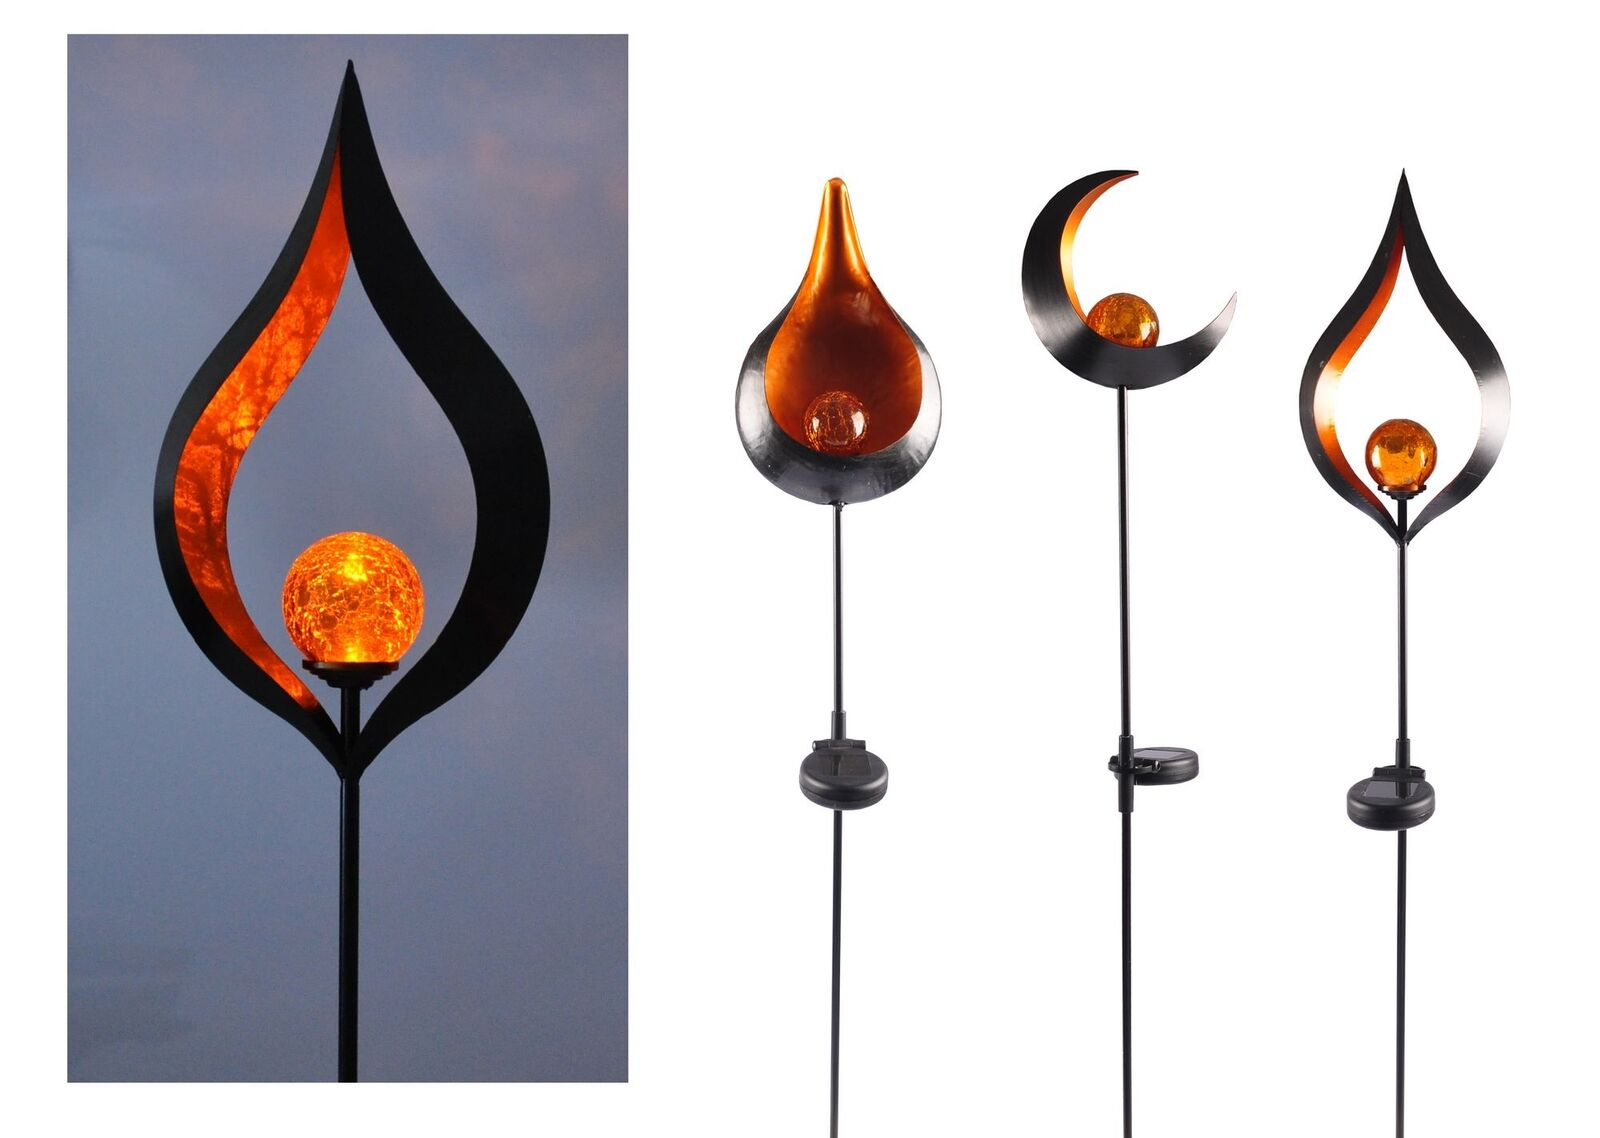 Solar Metall-Gartenstecker 95cm LED Glaskugel Gartendeko Mond Tropfen Flamme